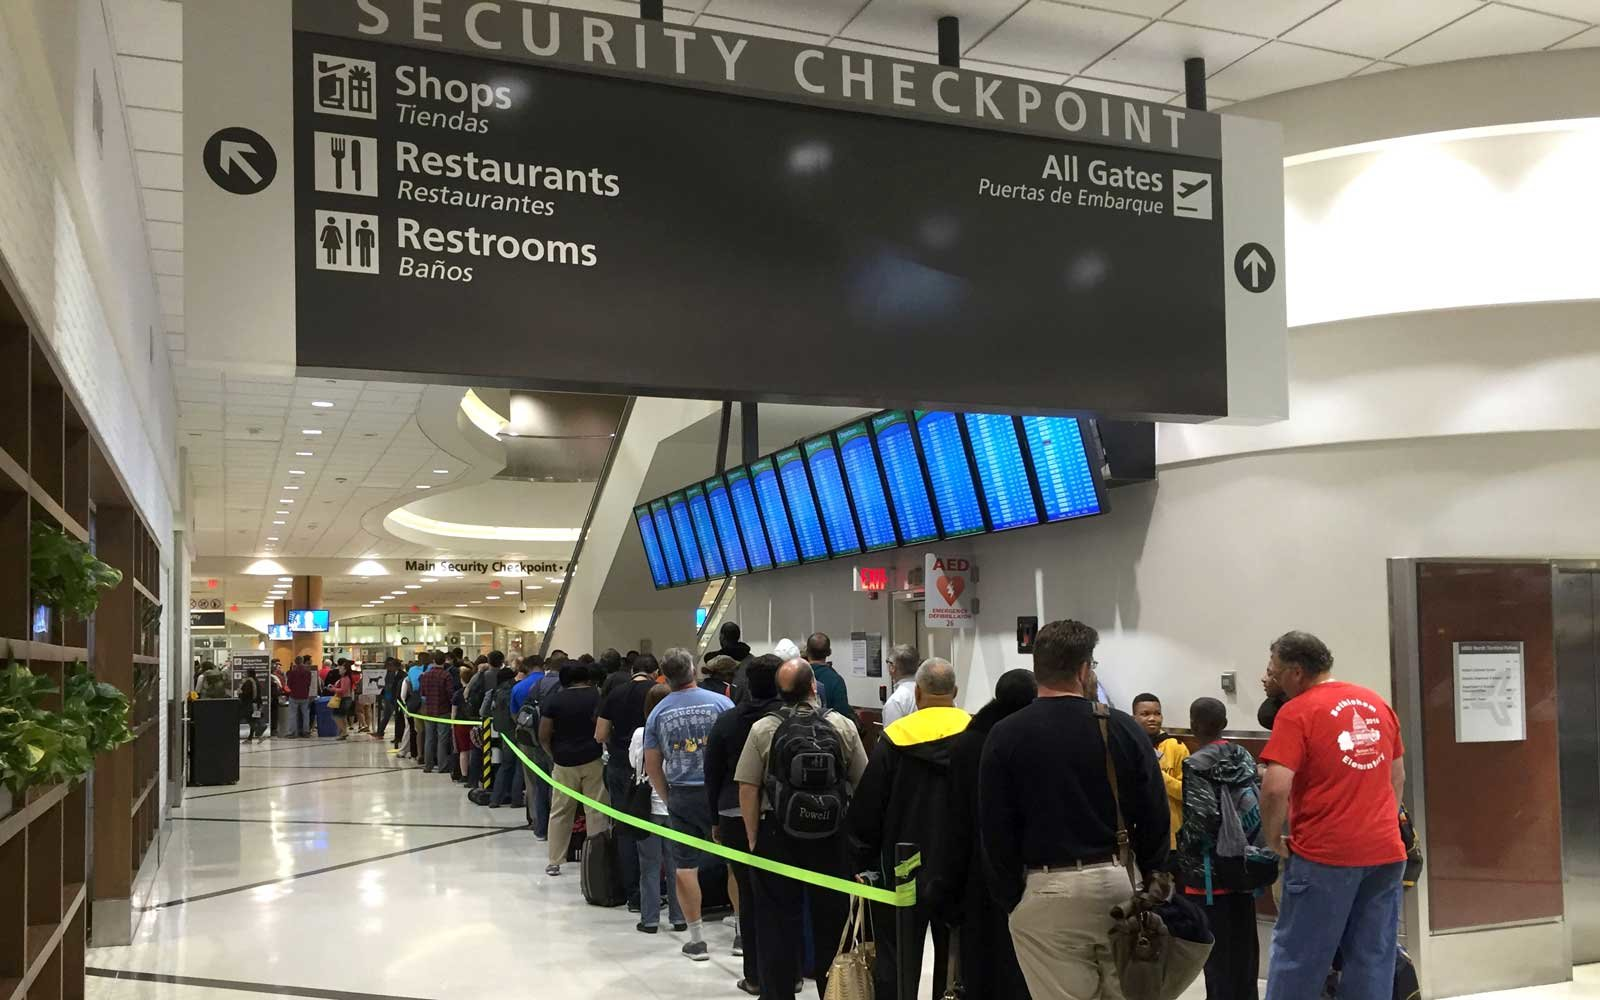 Passengers wait to go through security at the north terminal of the Hartsfield Jackson Atlanta International Airport in Atlanta, Georgia on May 17, 2016.